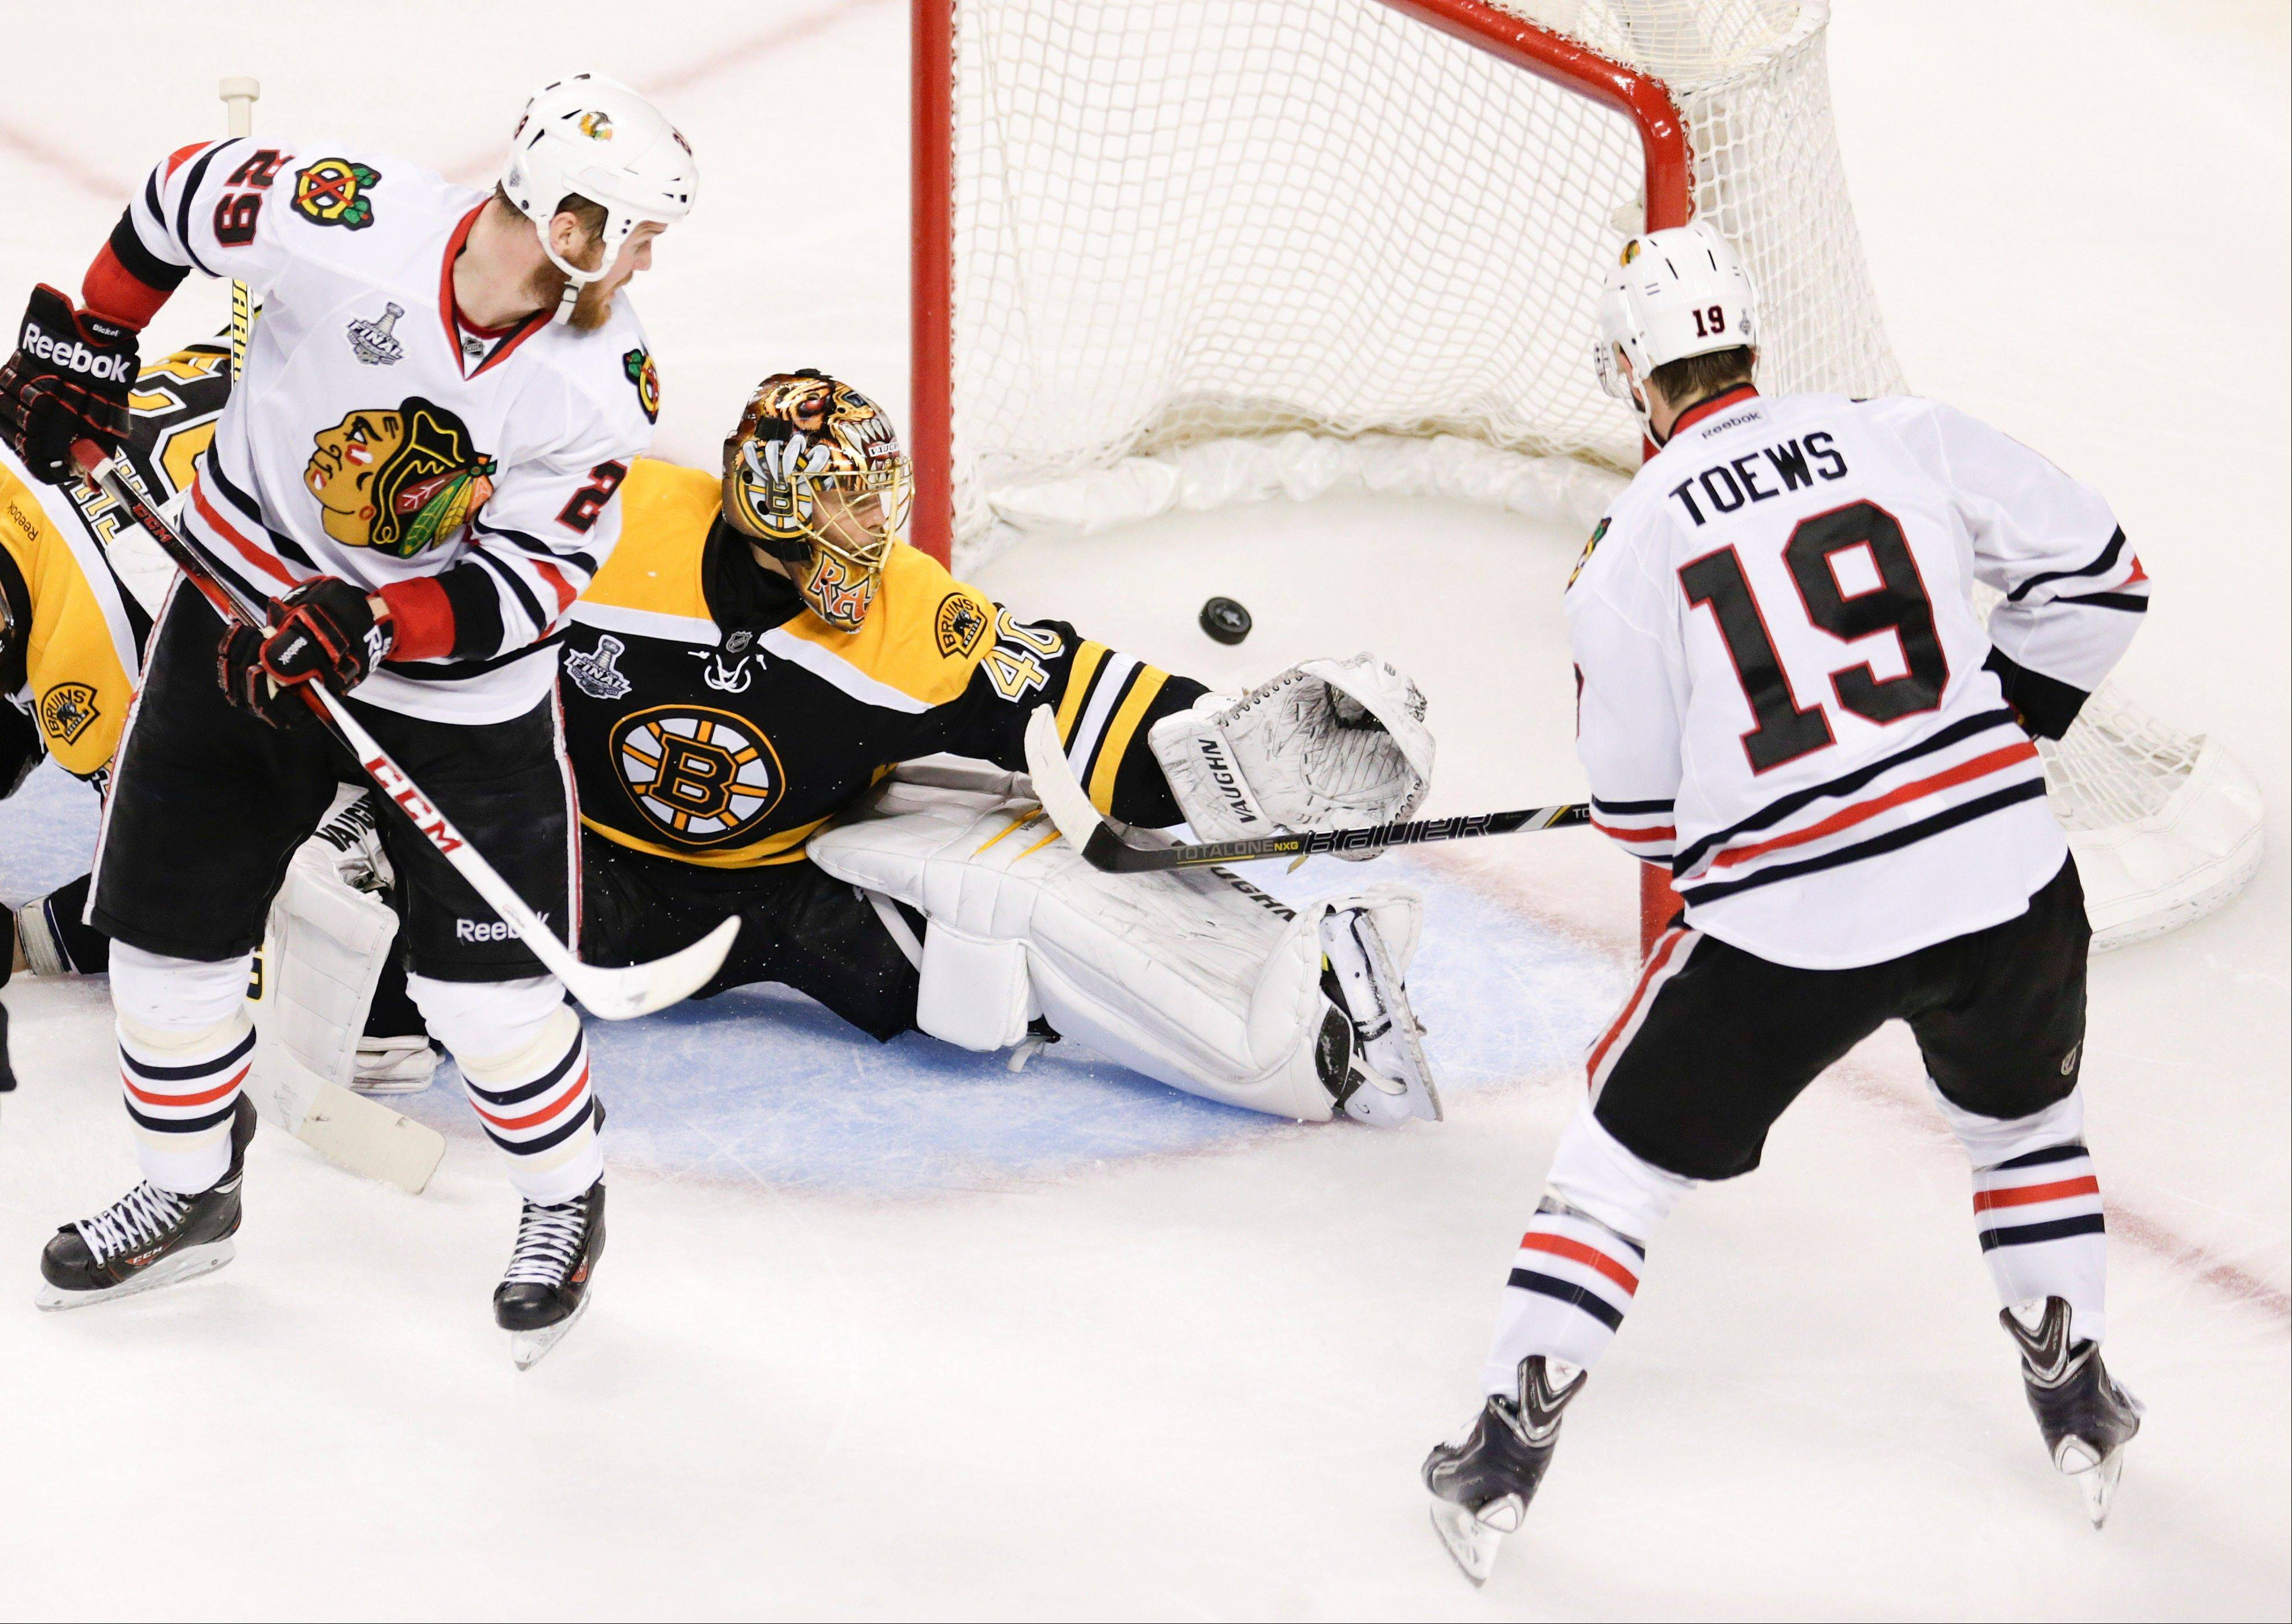 Chicago Blackhawks center Jonathan Toews (19) scores a goal past Boston Bruins goalie Tuukka Rask (40), of Finland, during the second period in Game 4 of the NHL hockey Stanley Cup Finals.